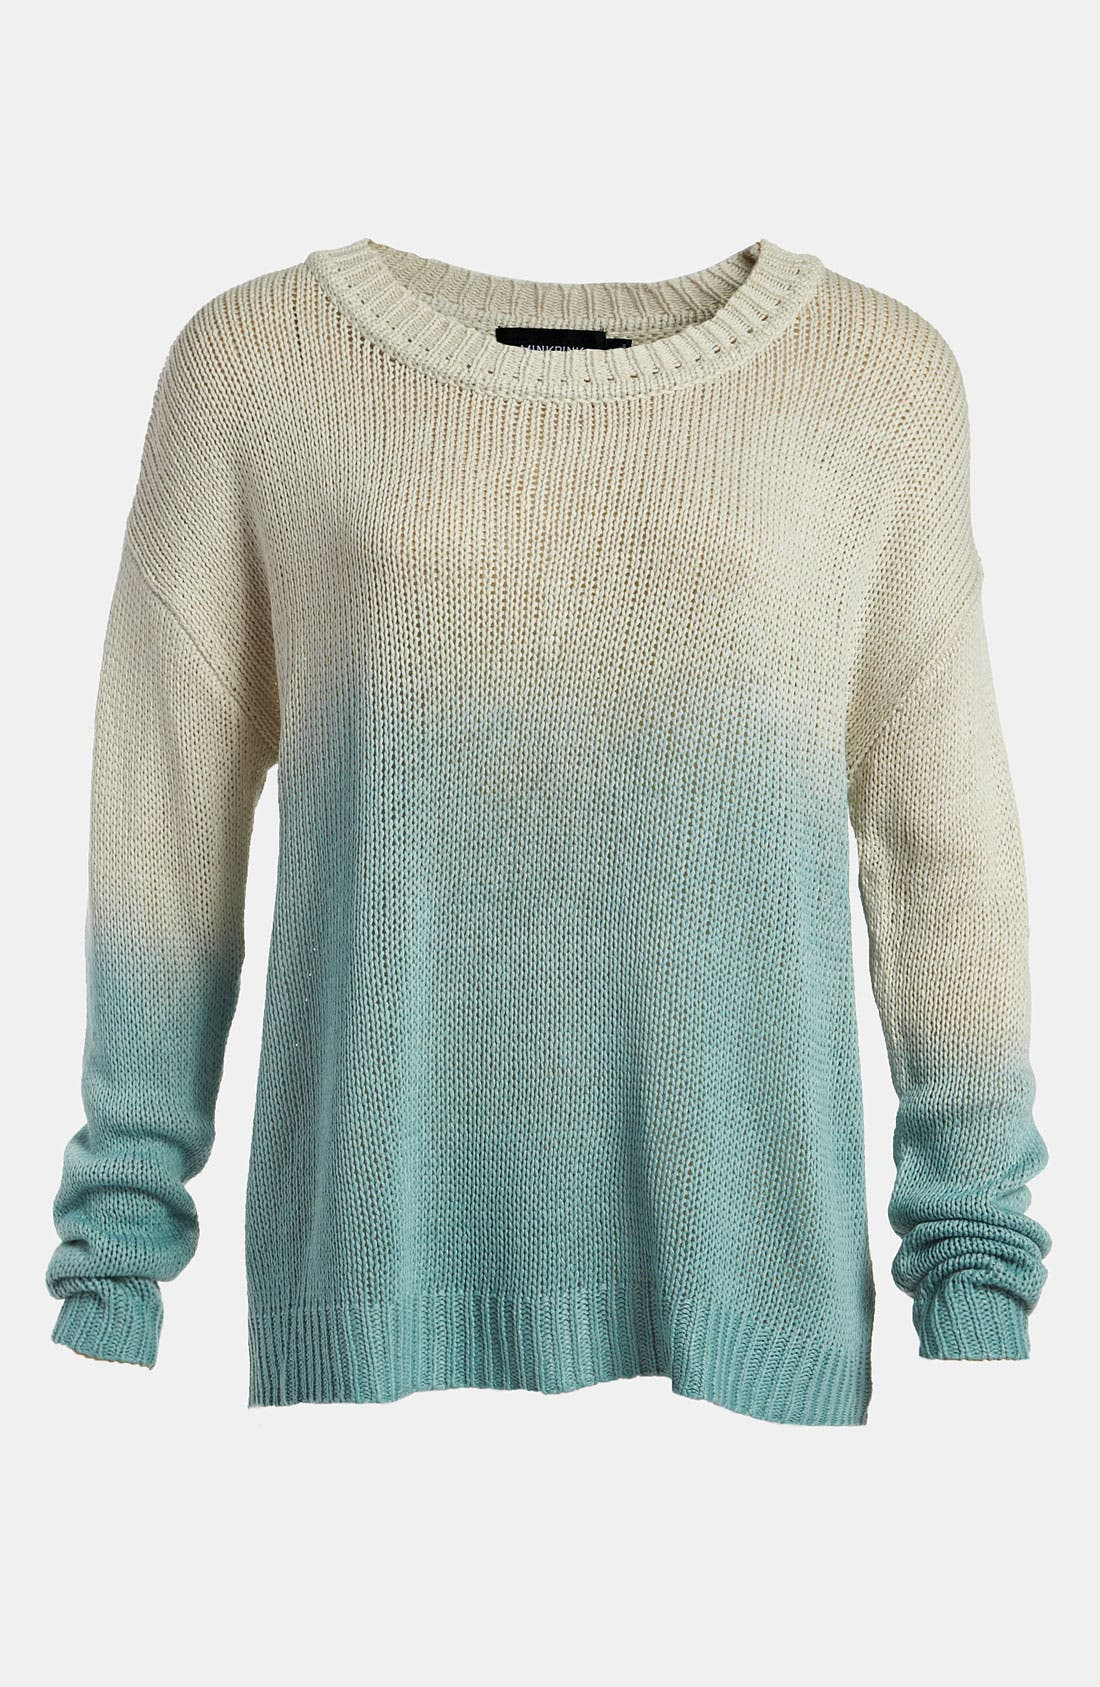 Alternate Image 1 Selected - MINKPINK 'Melting Moments' Dip Dye Sweater